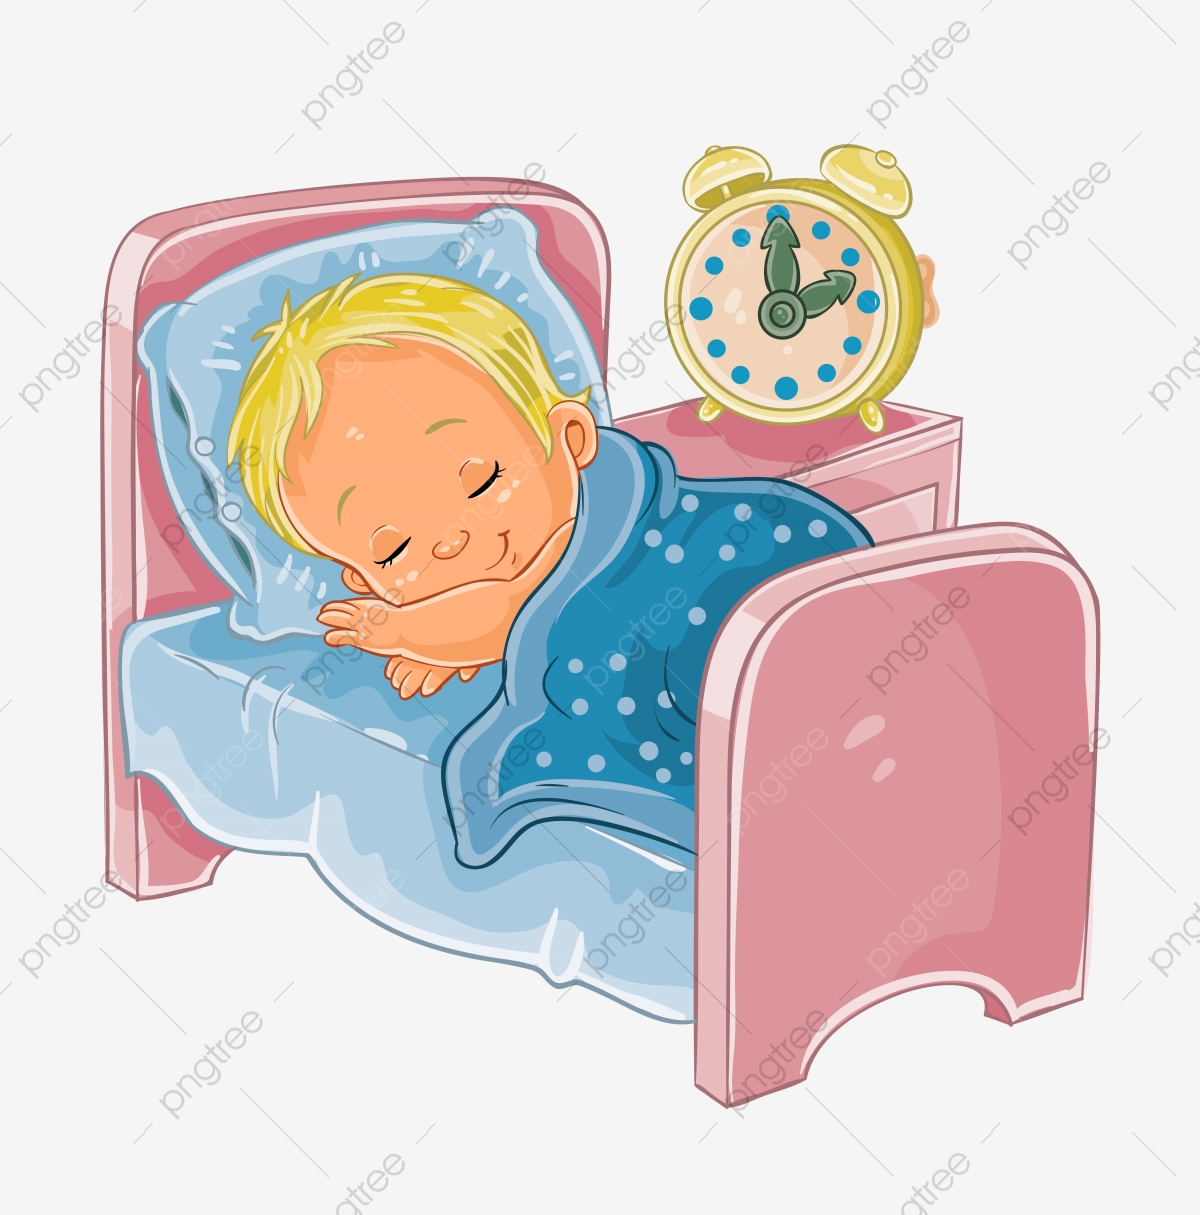 Vector Clip Art Illustration Of A Little Baby Sleeping In His Bed ... vector transparent library